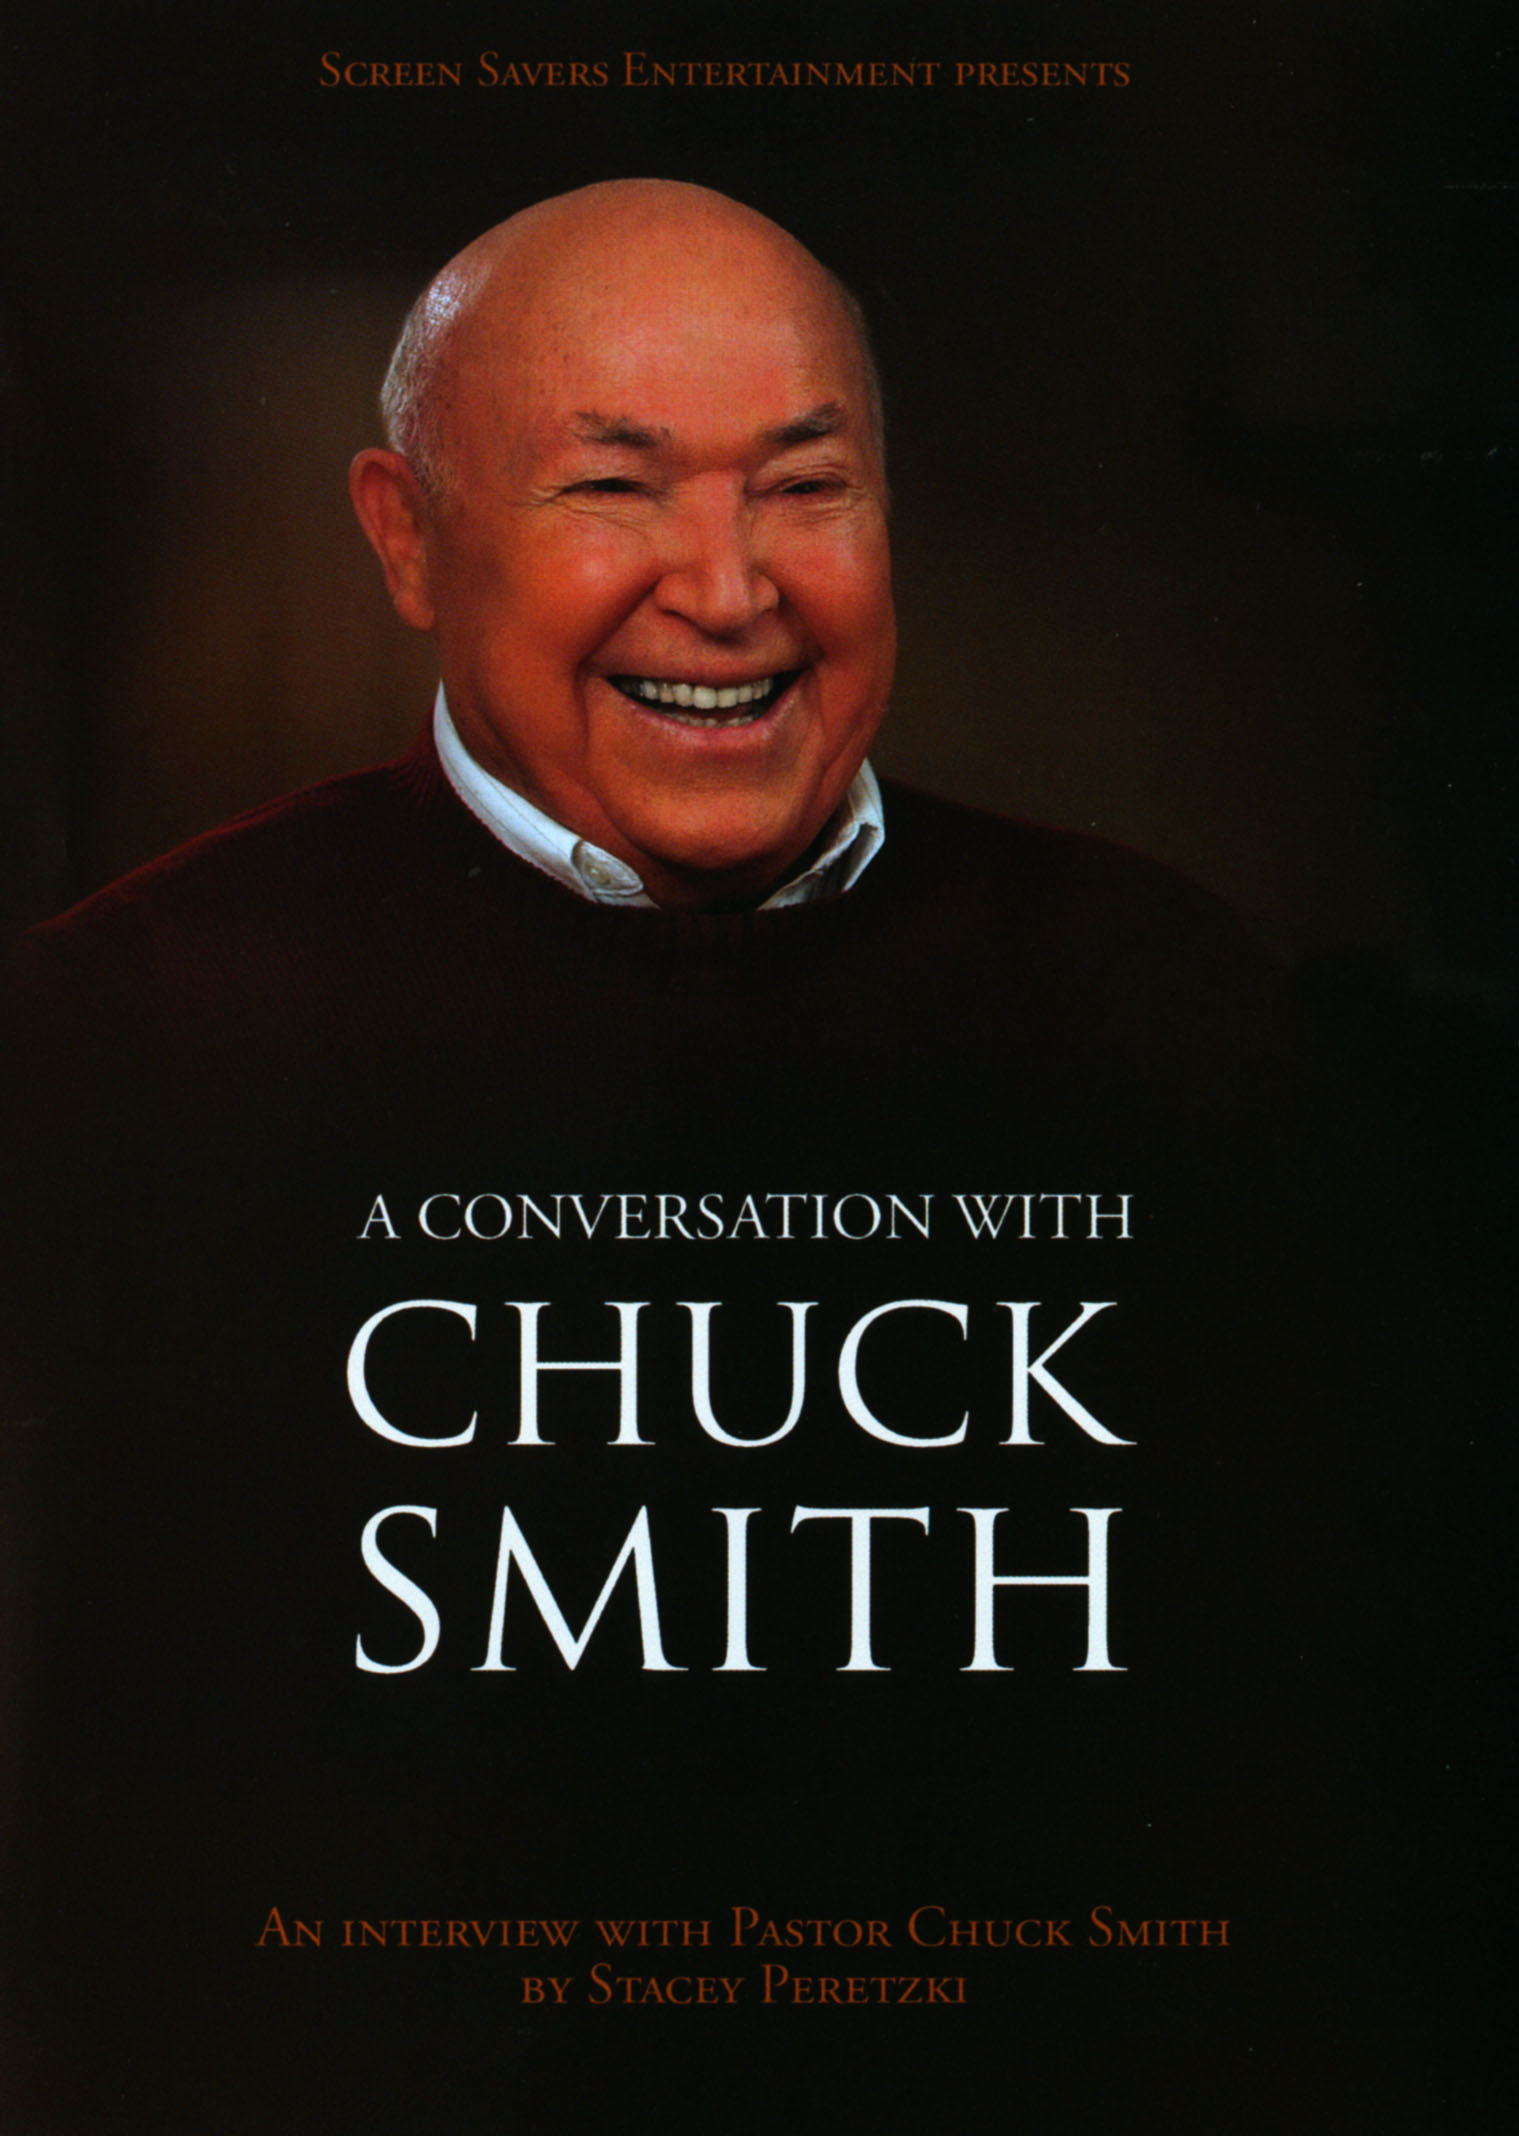 A Conversation with Chuck Smith